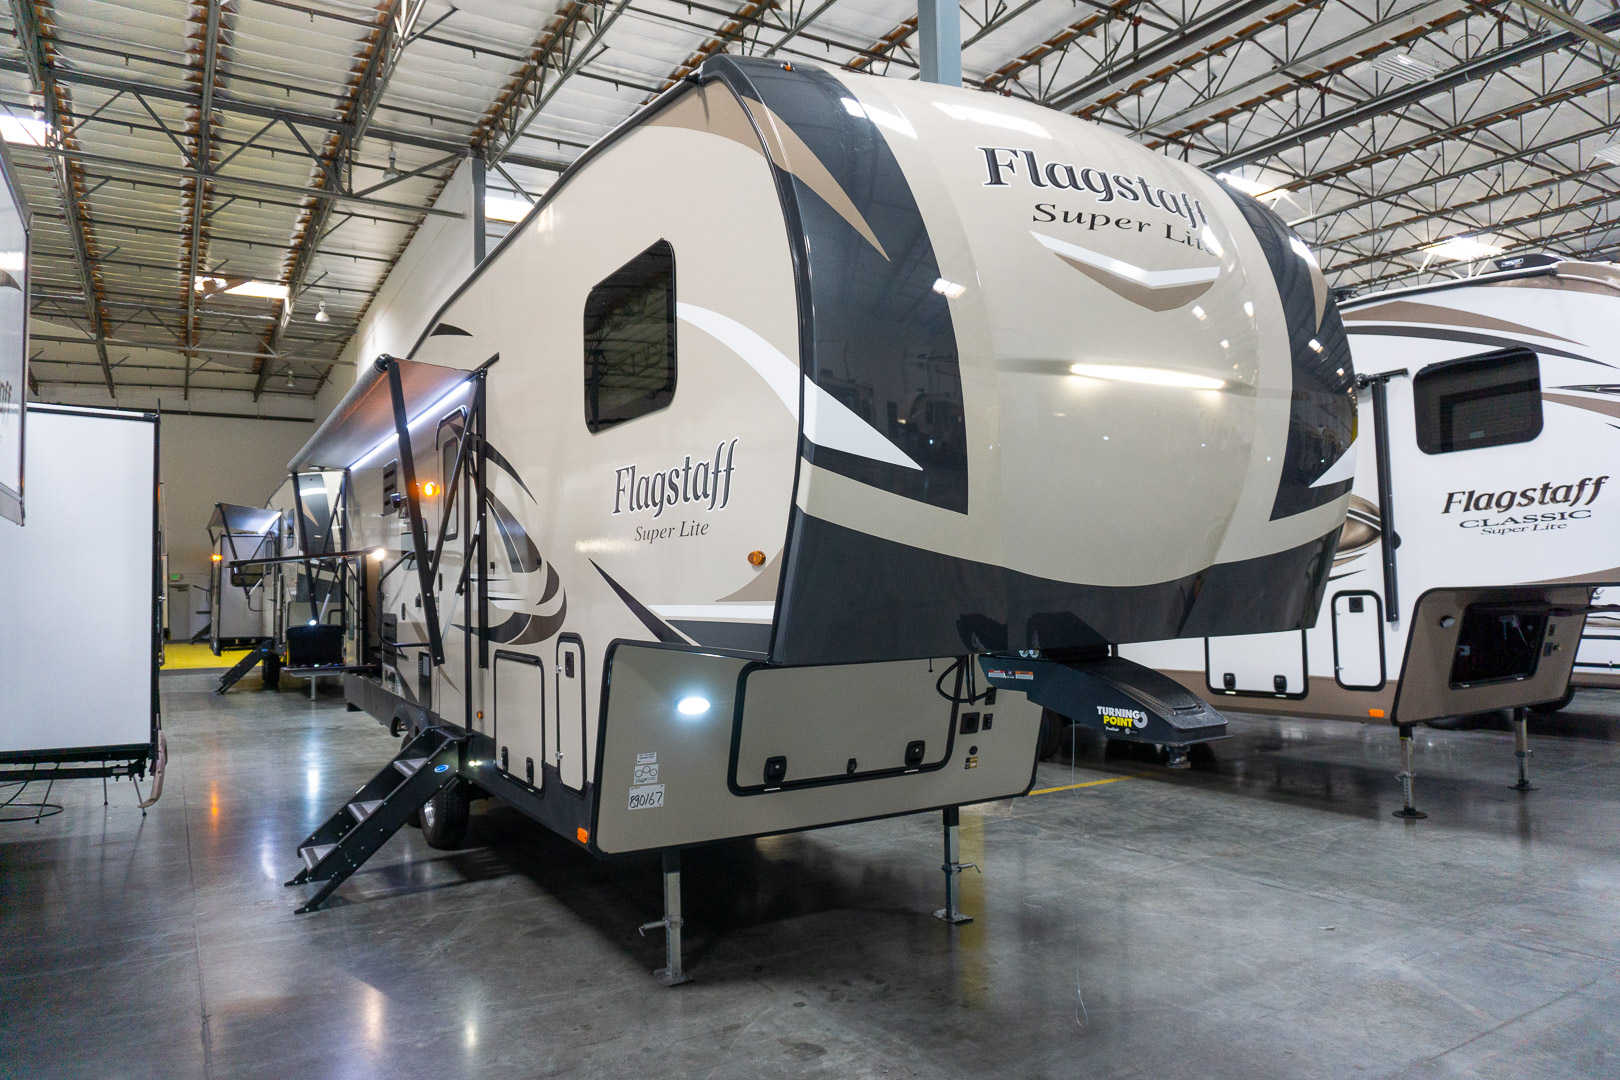 2020 FOREST RIVER FLAGSTAFF SUPER LITE 527BHS - Family RV